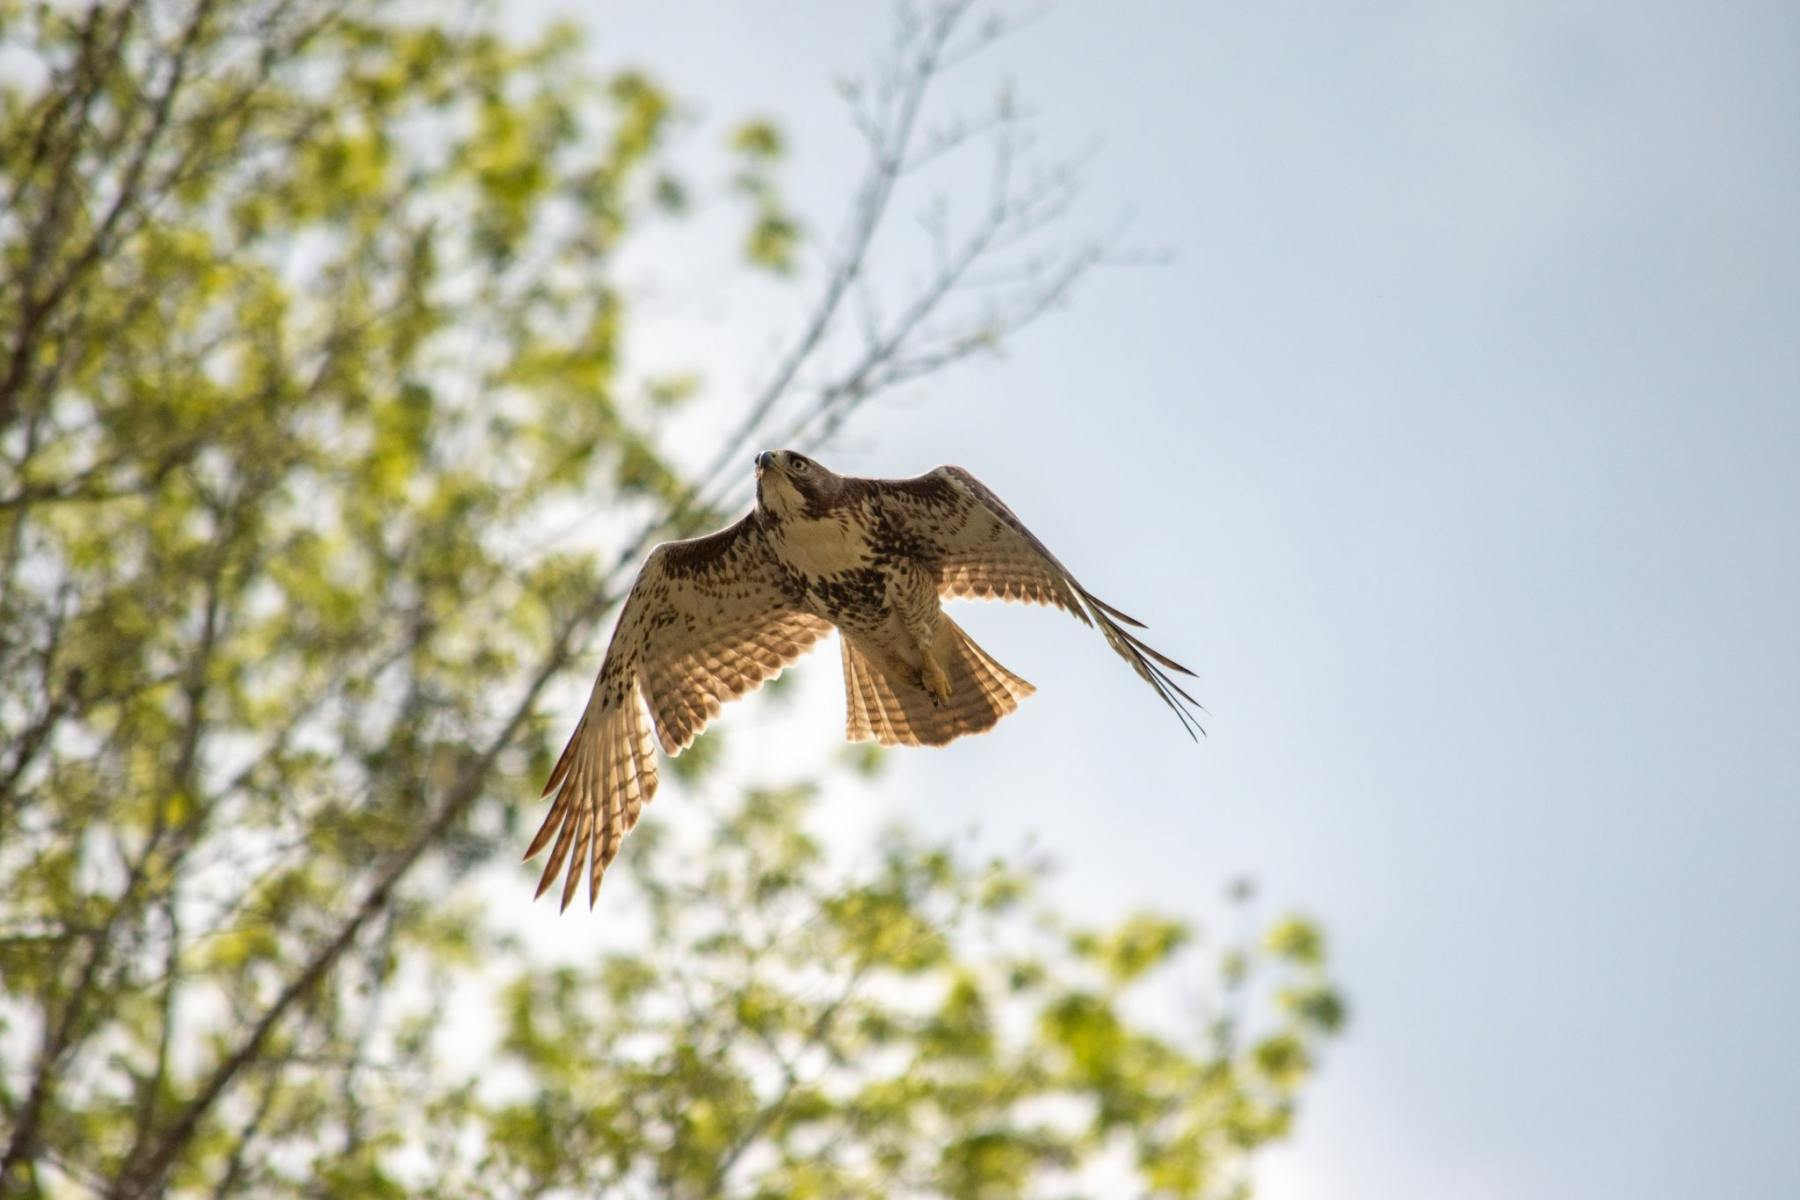 Red-tailed Hawk by Rob Colquhoun